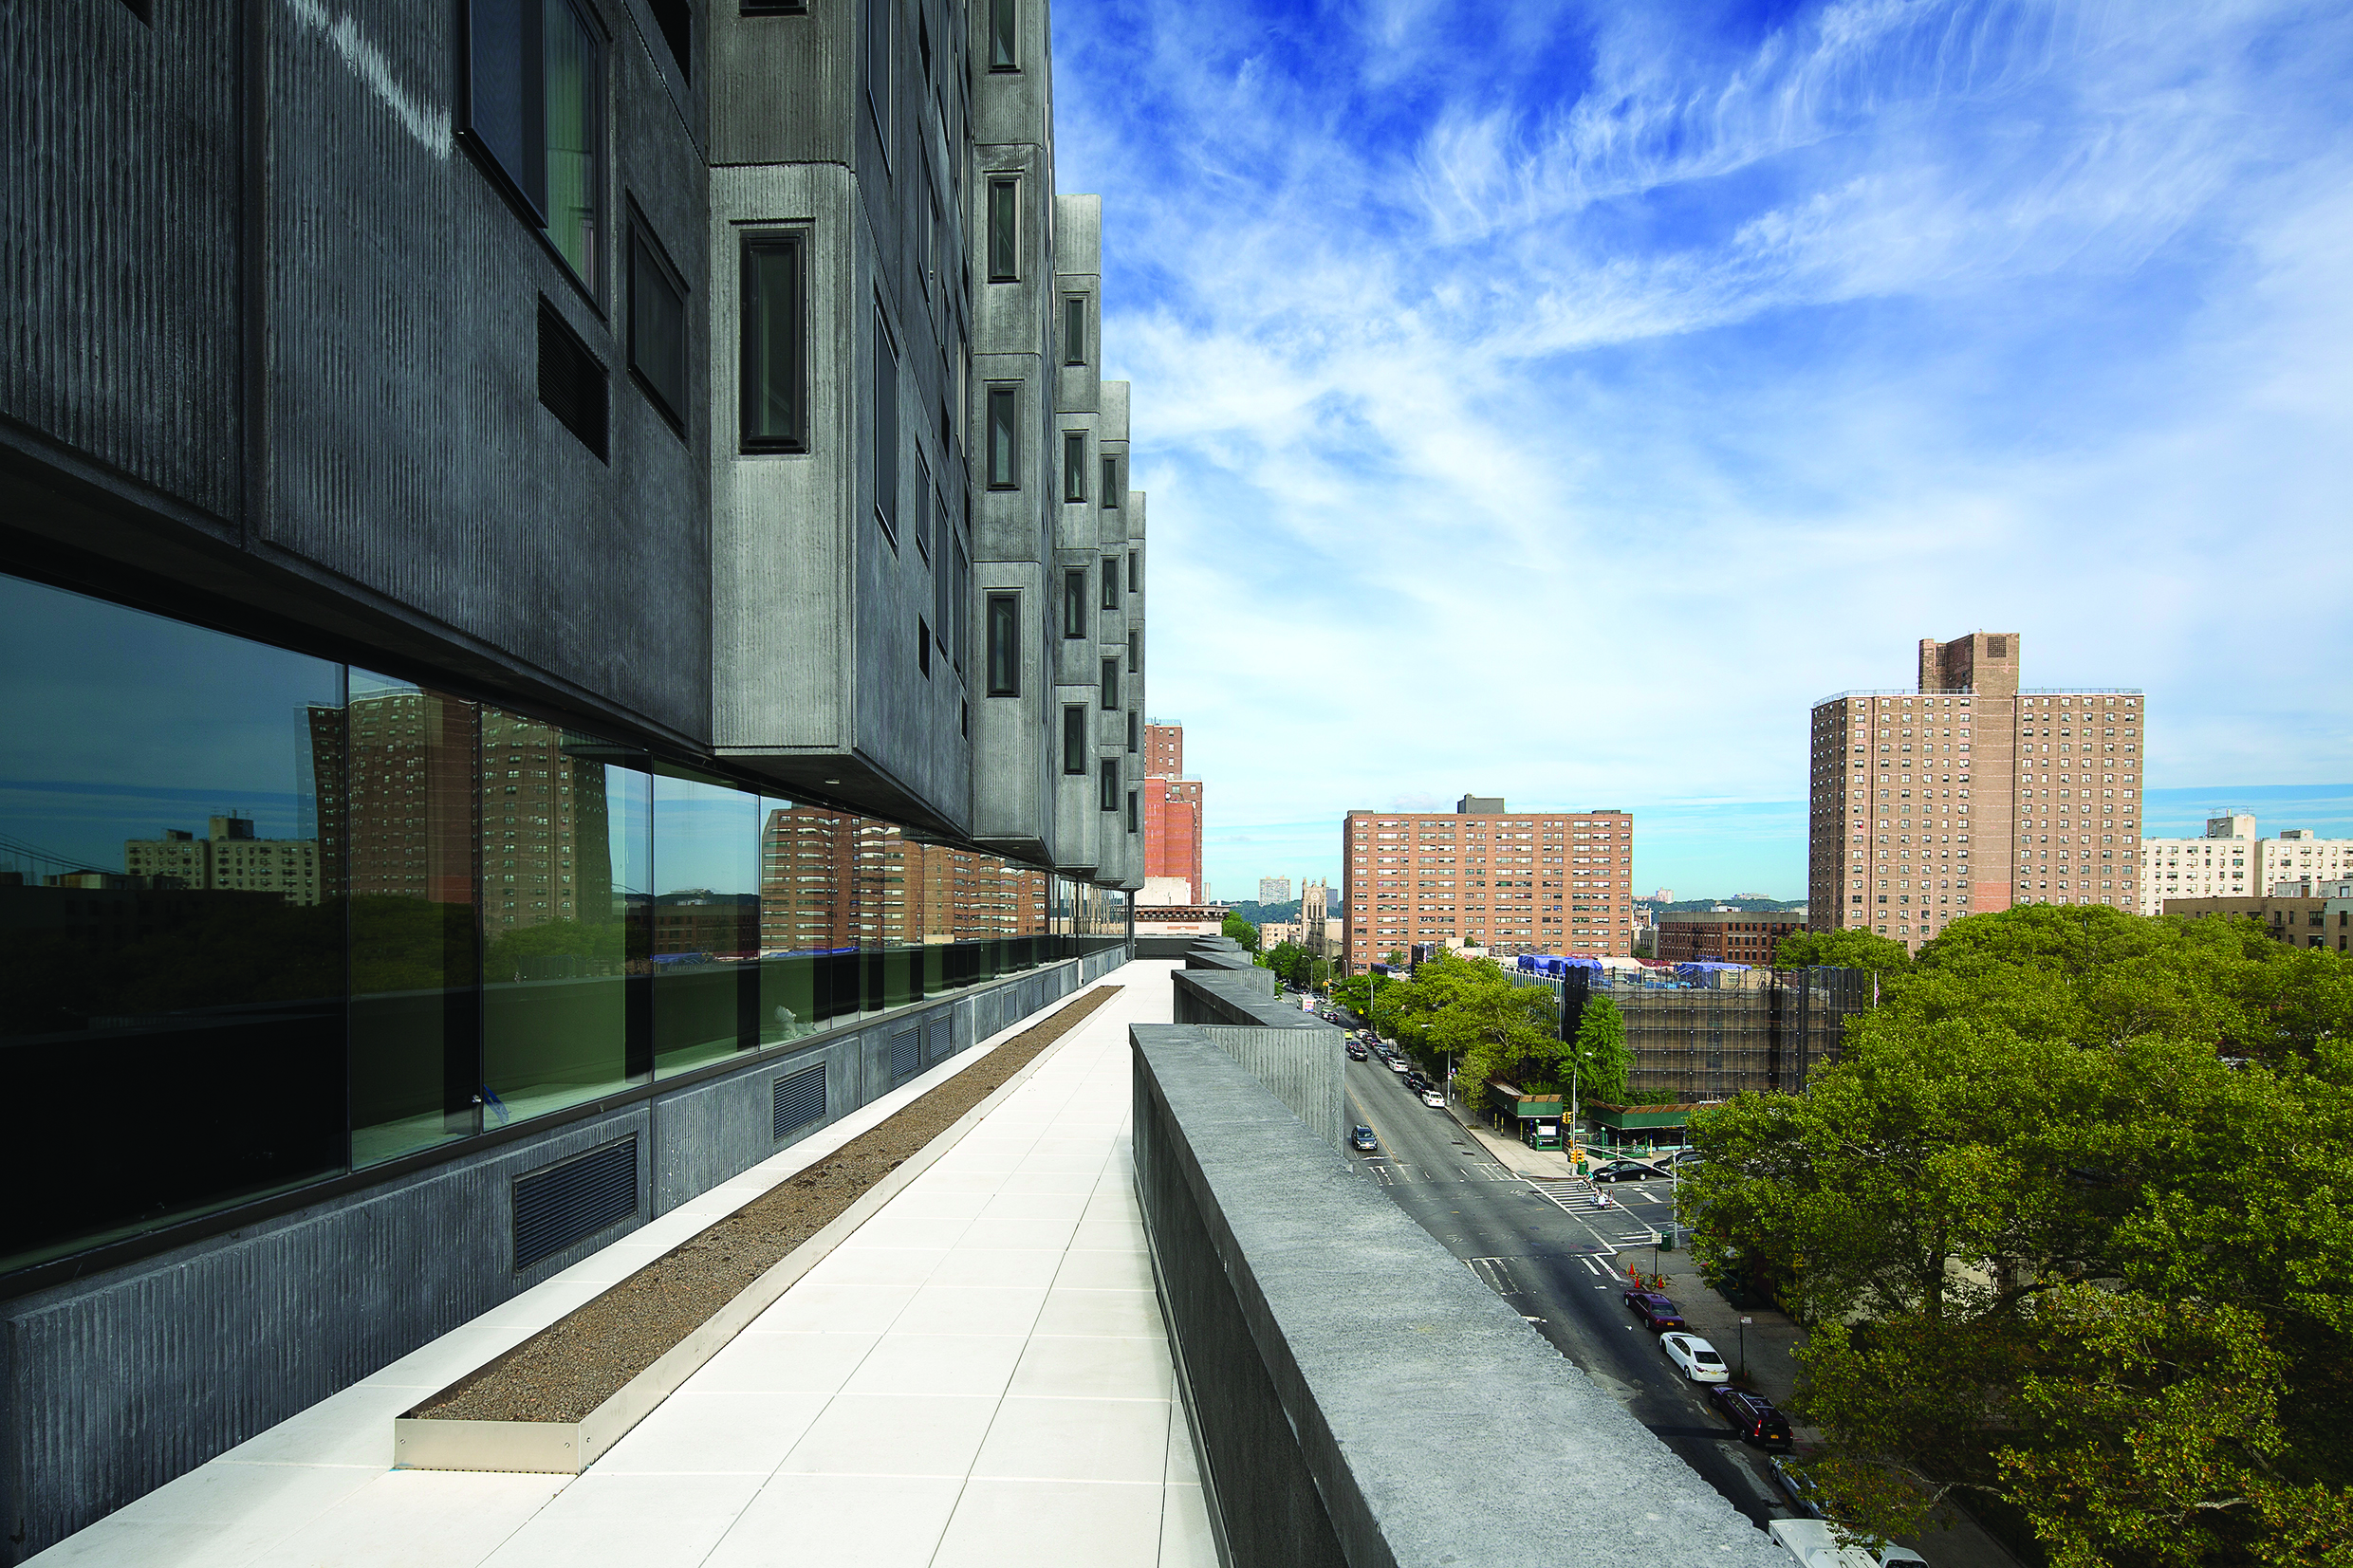 View from the terrace of the Sugar Hill project. (Photo:  Ed Reeve)